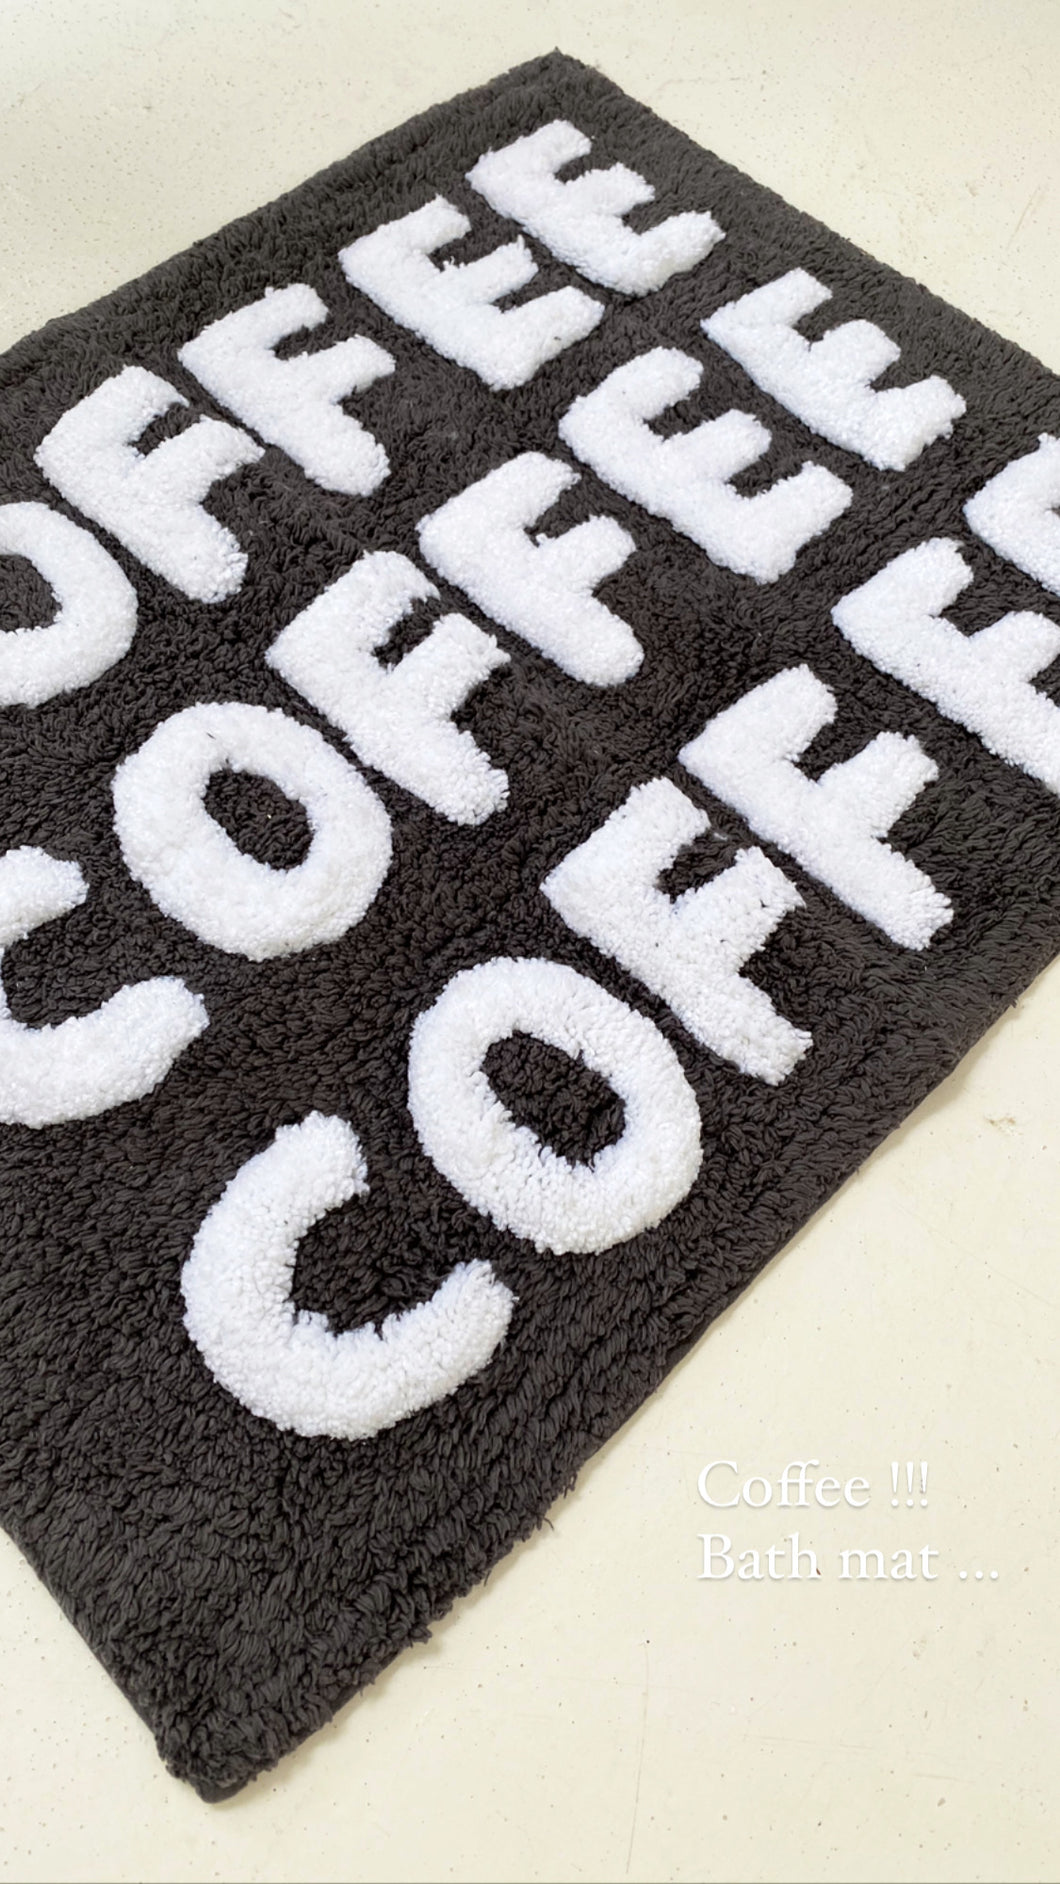 coffee bathmat